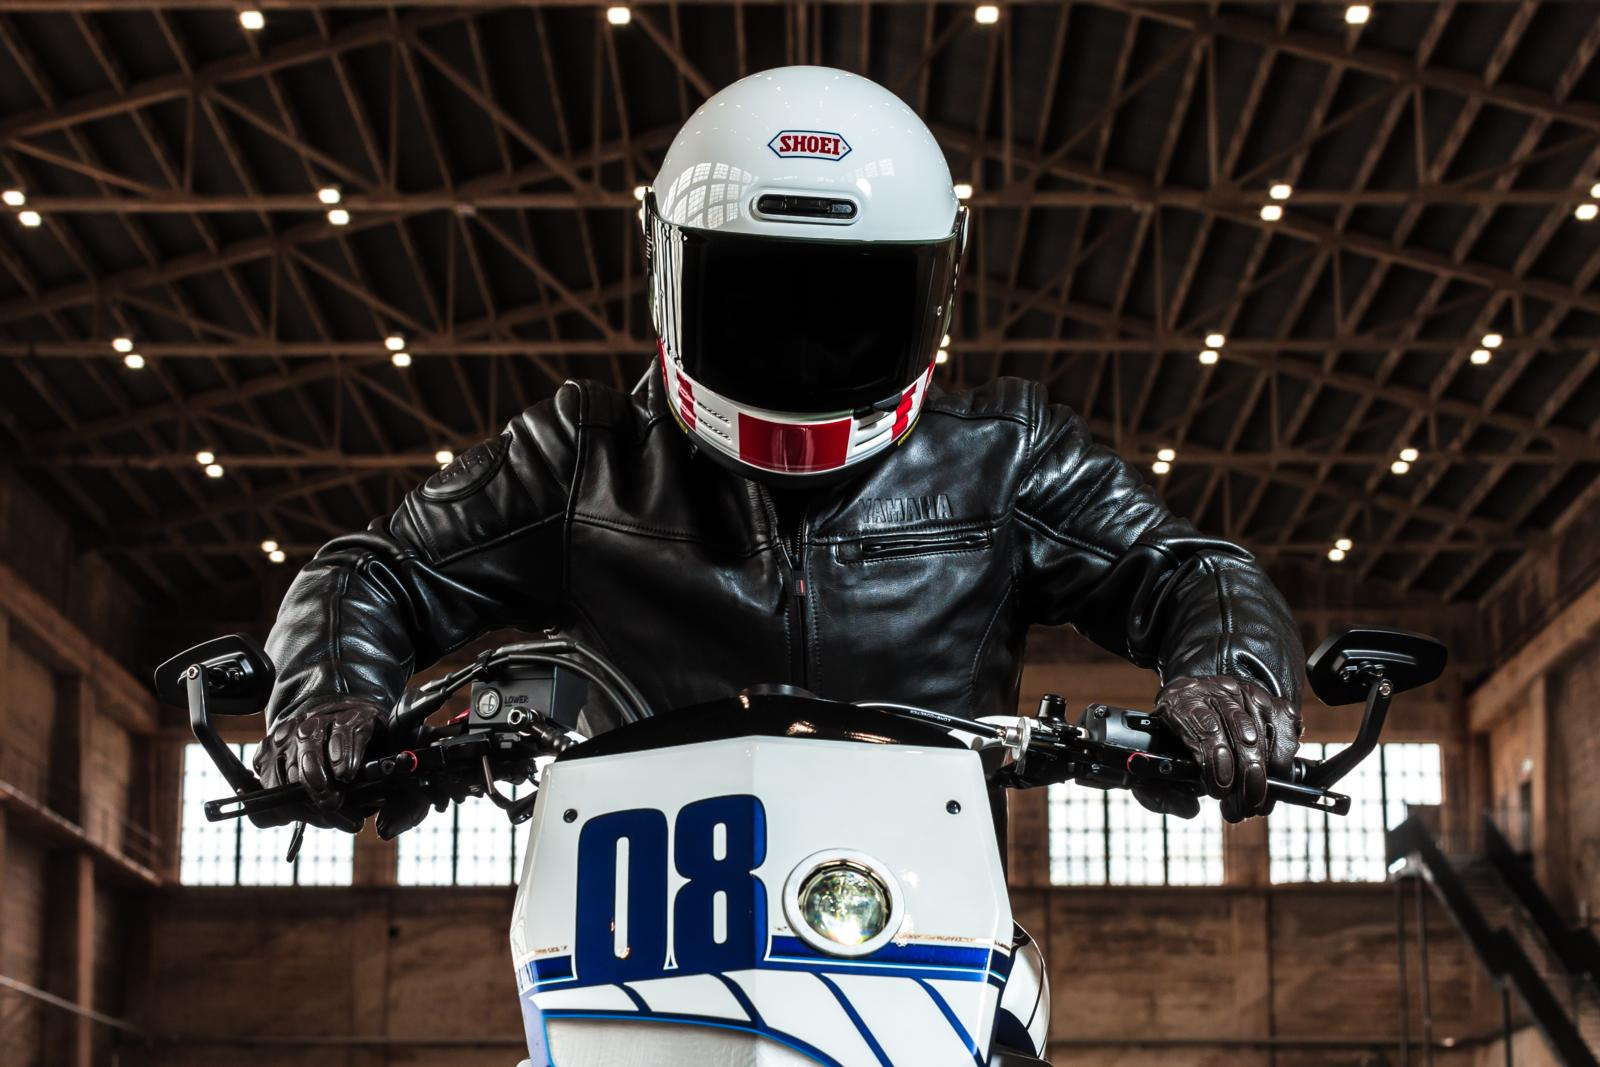 Yamaha XSR700 FUJIN by Bobber Garage (6)_preview